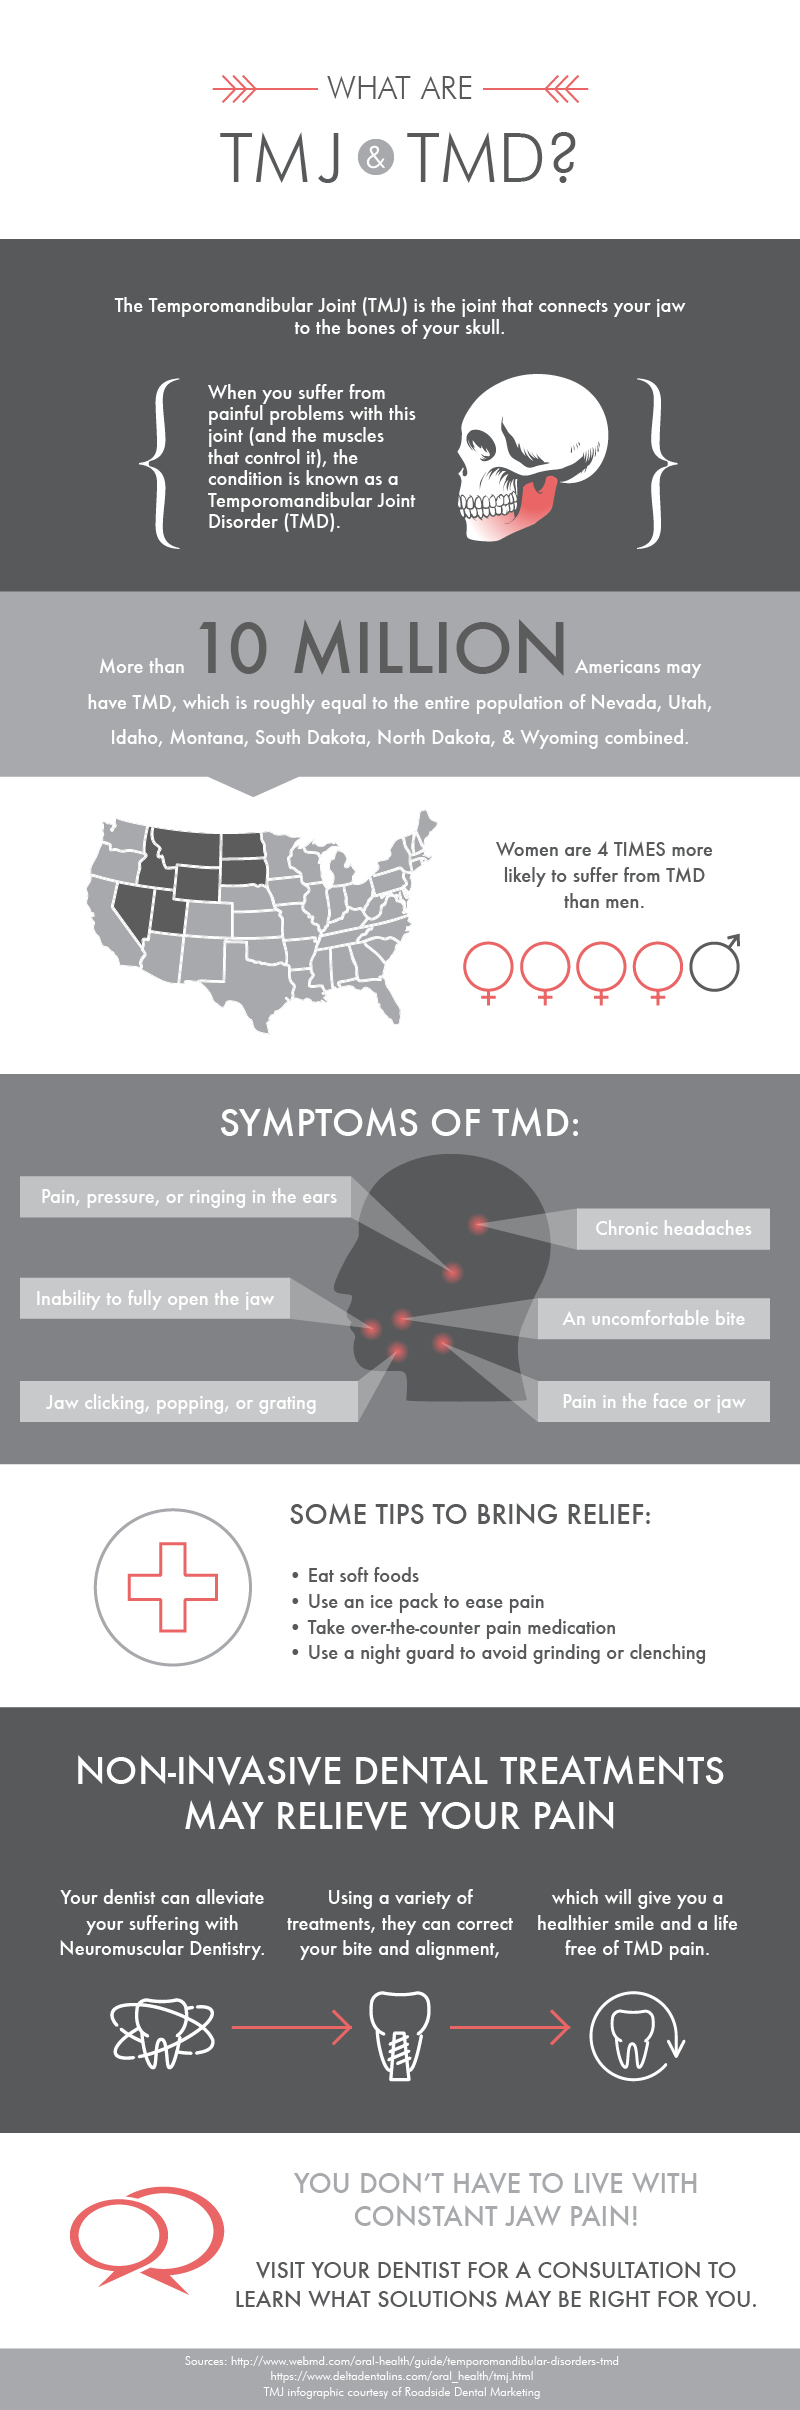 You may be able to find relief for frequent headaches and jaw pain by seeking treatment for TMD from your dentist.